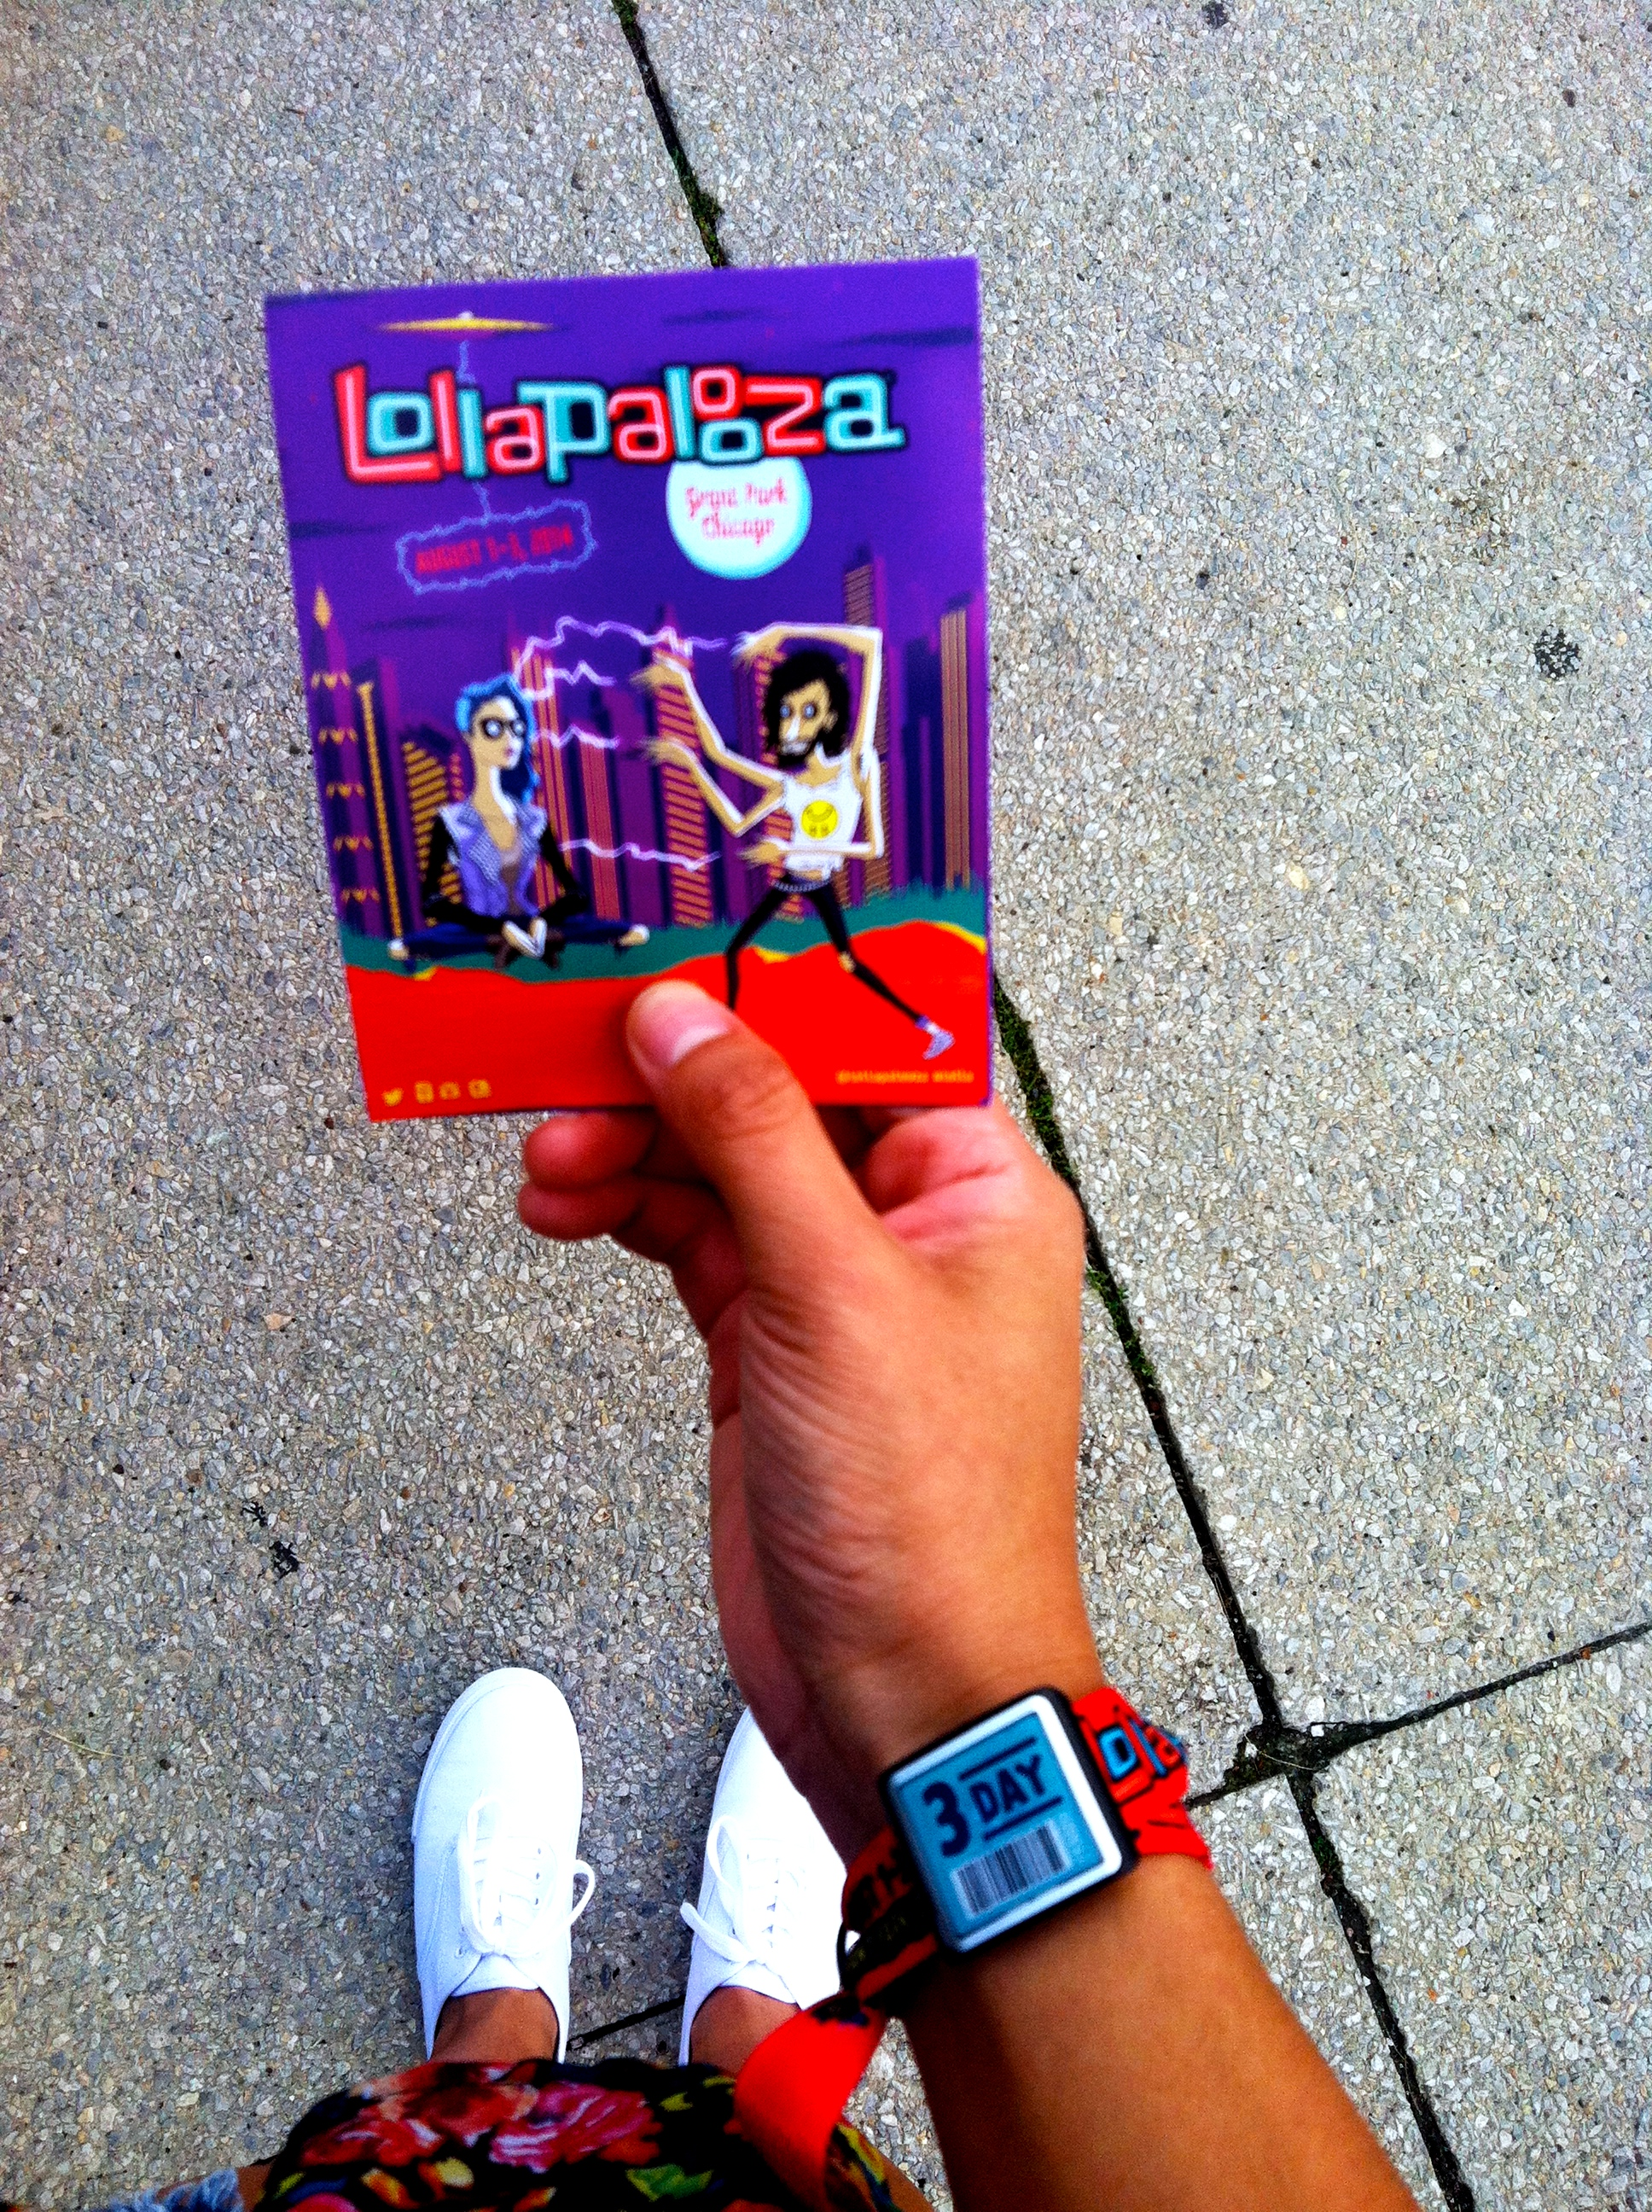 The Lollapalooza Life